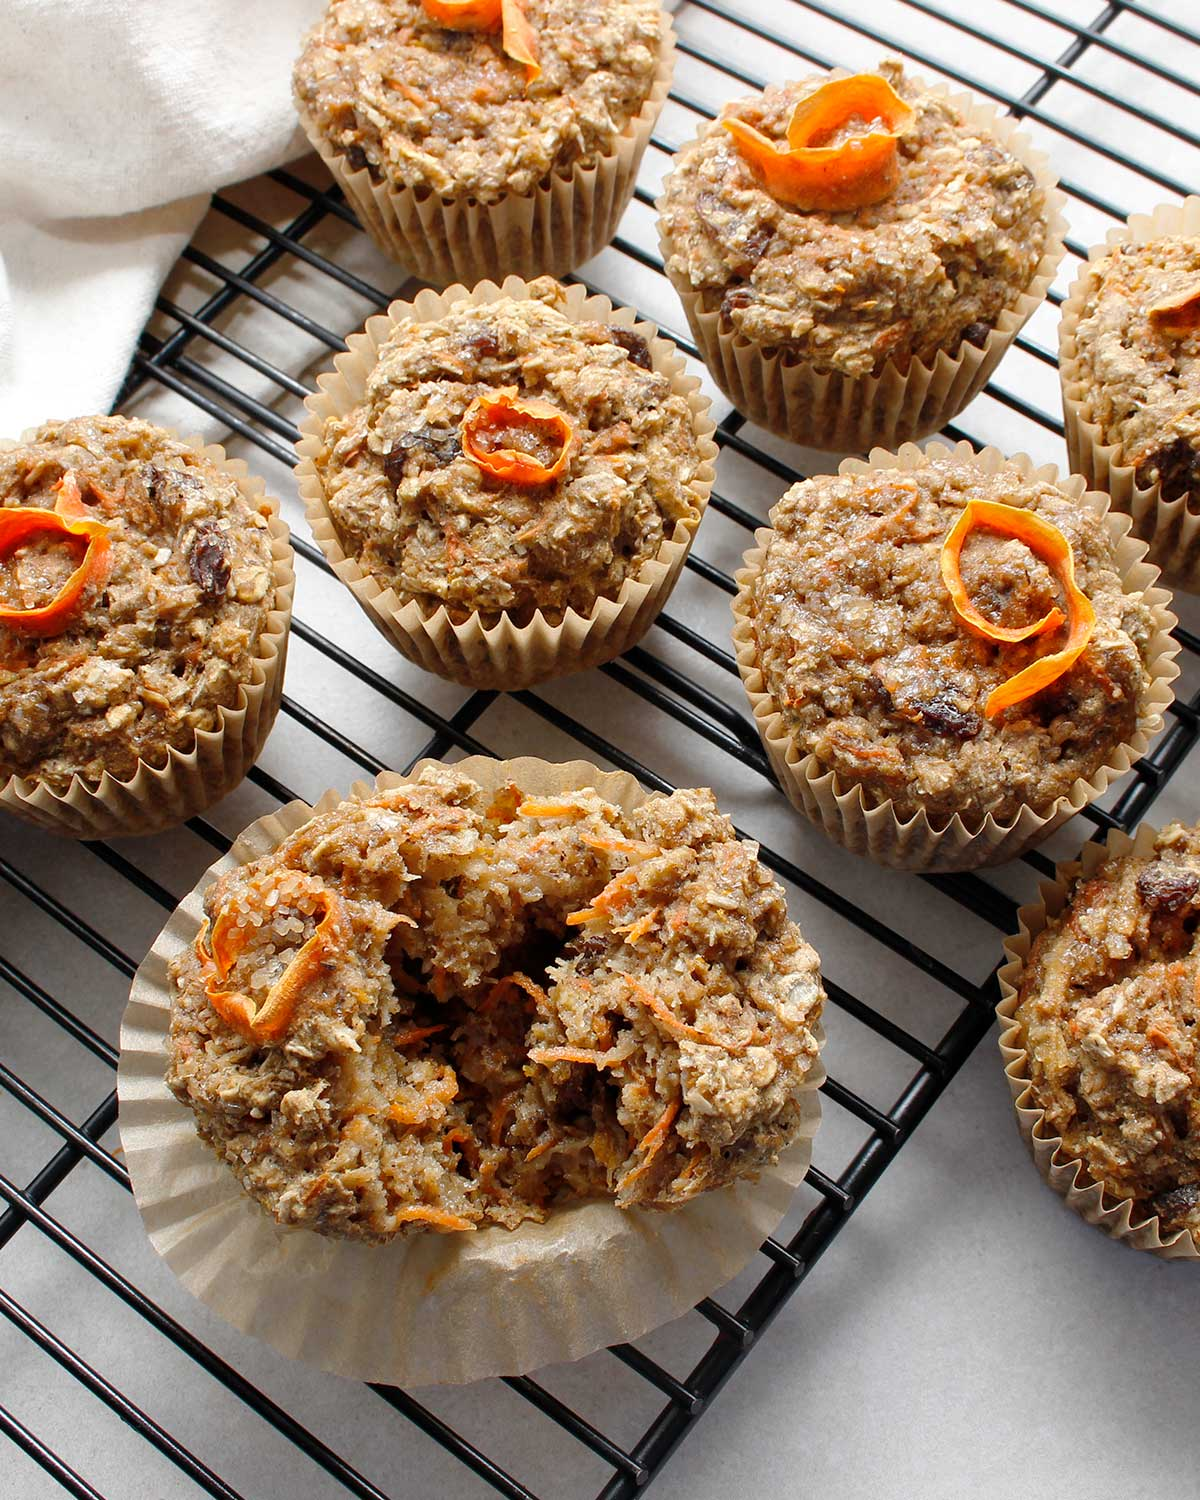 Gluten-free, vegan and allergen-friendly healthy morning glory muffins by Fresh is Real.